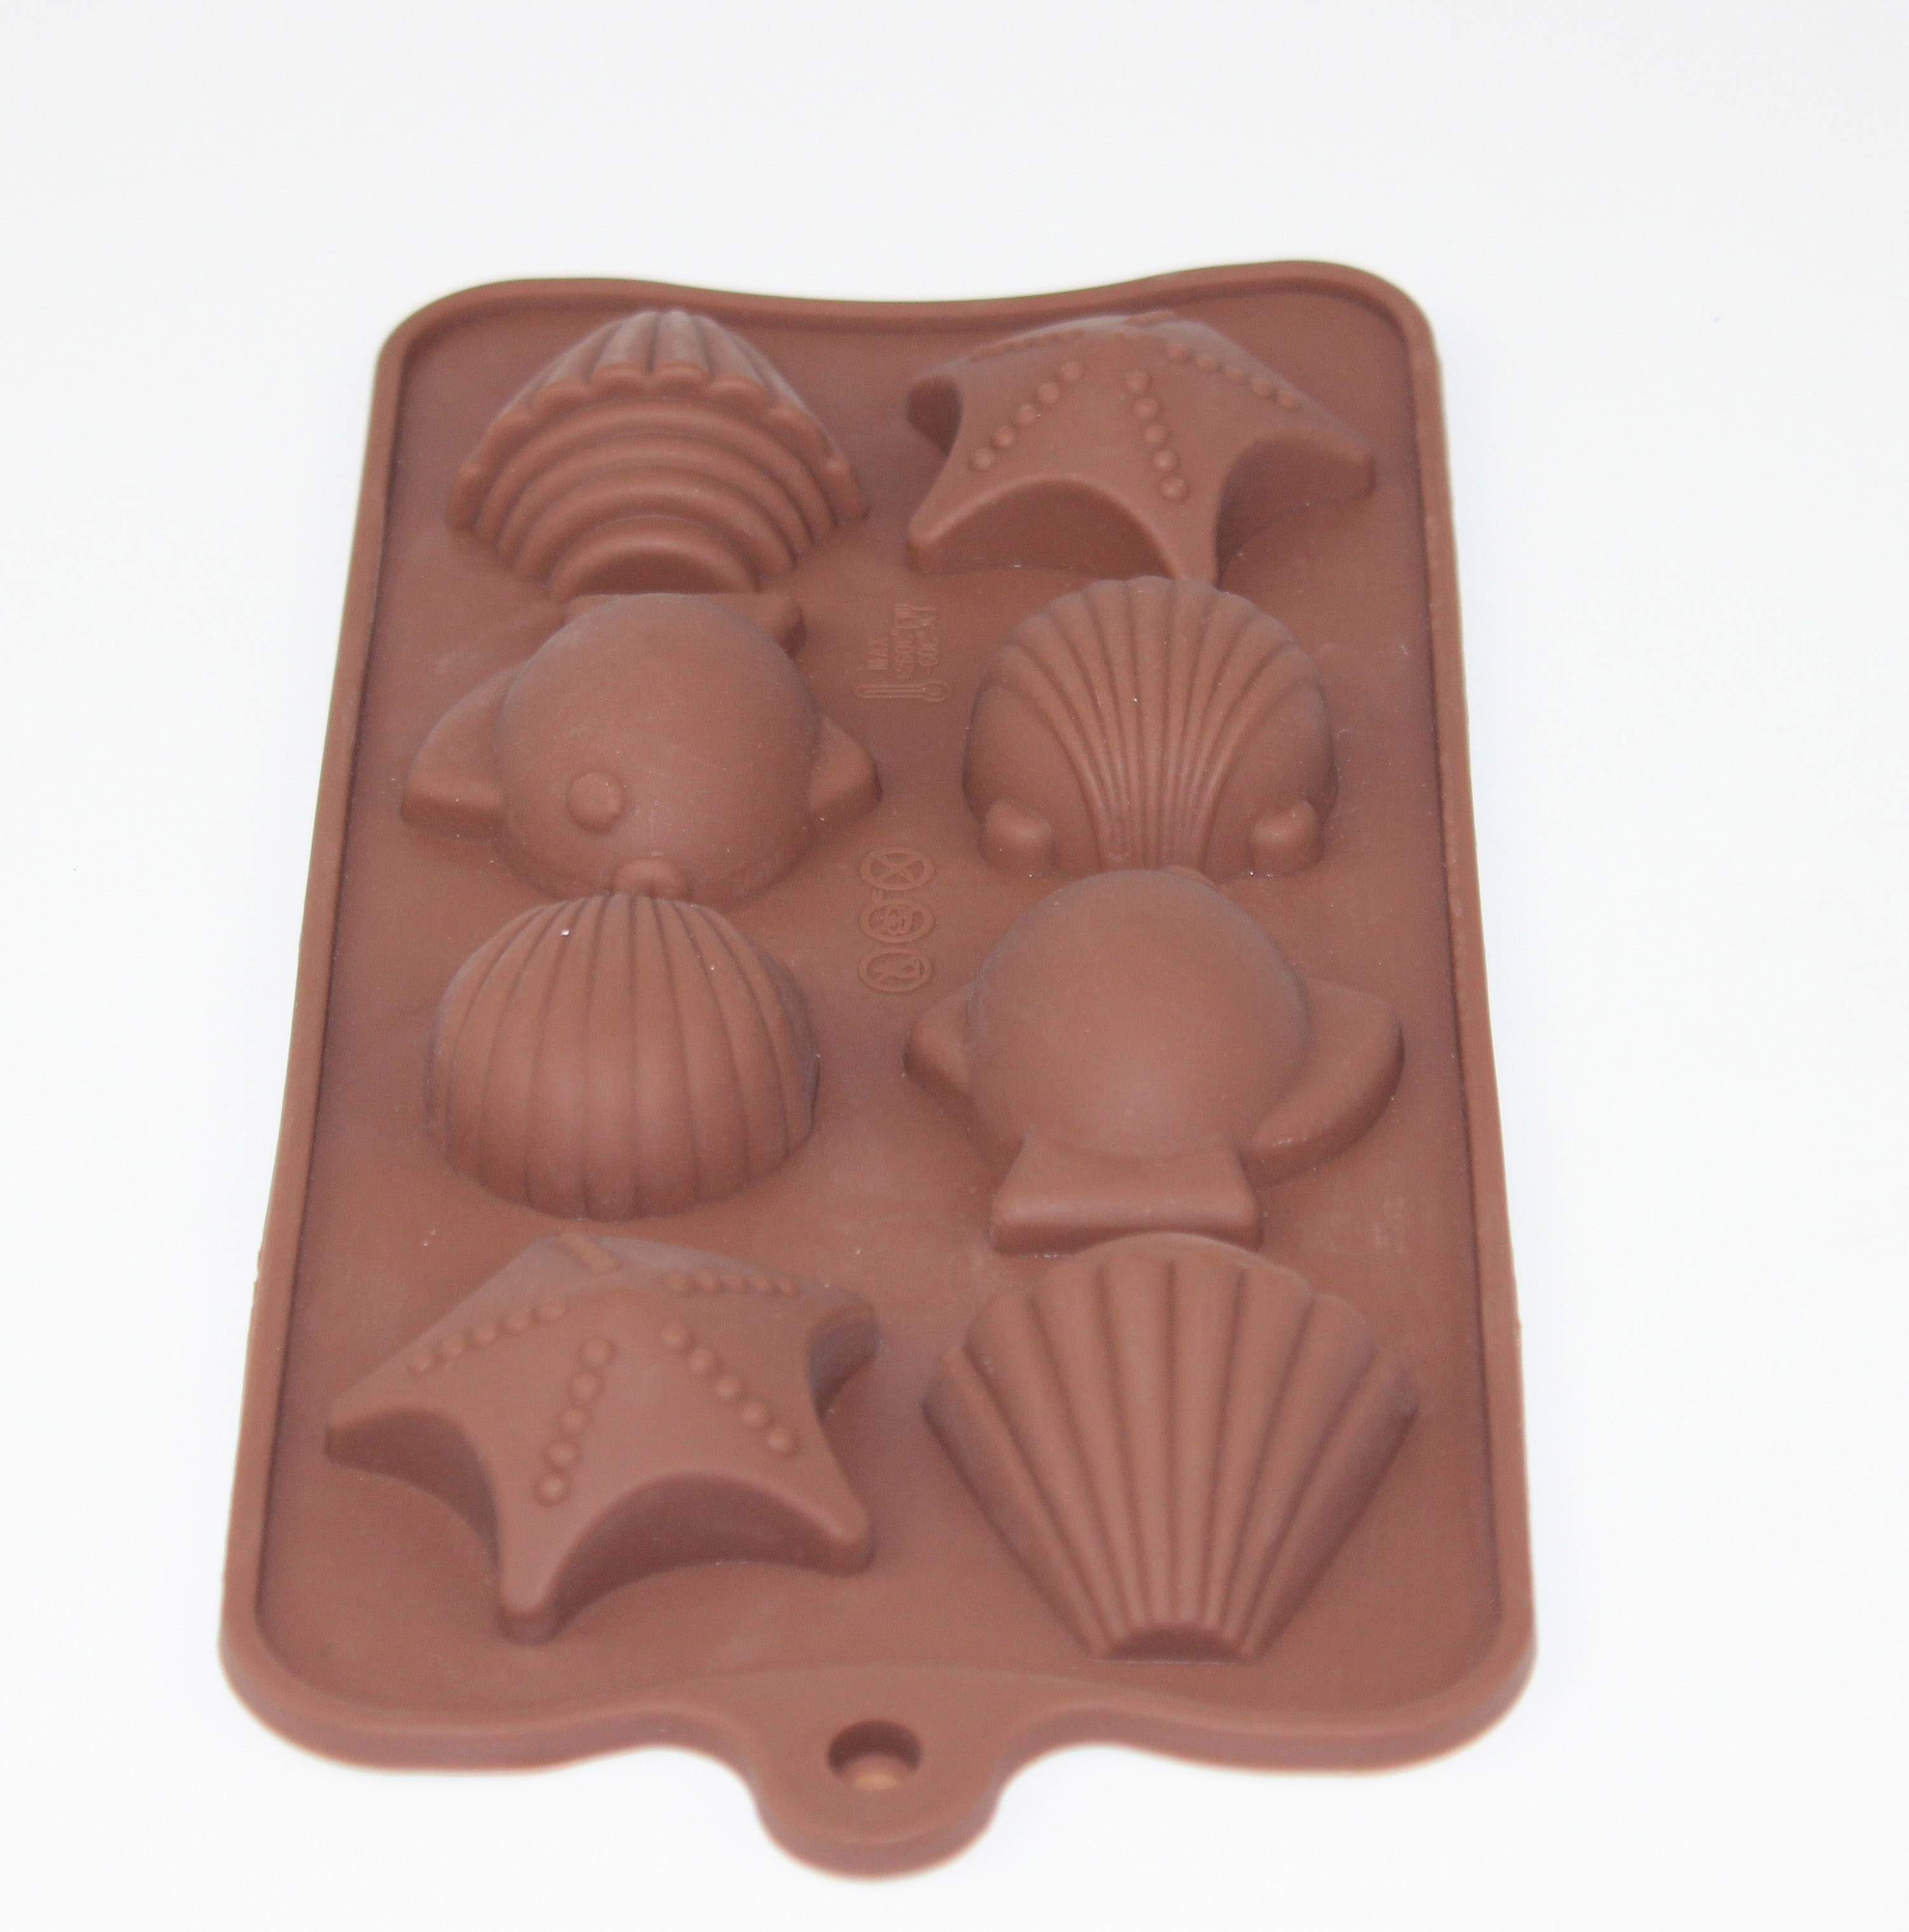 Shell Shape 8-Cubes Silicone chocolate molds